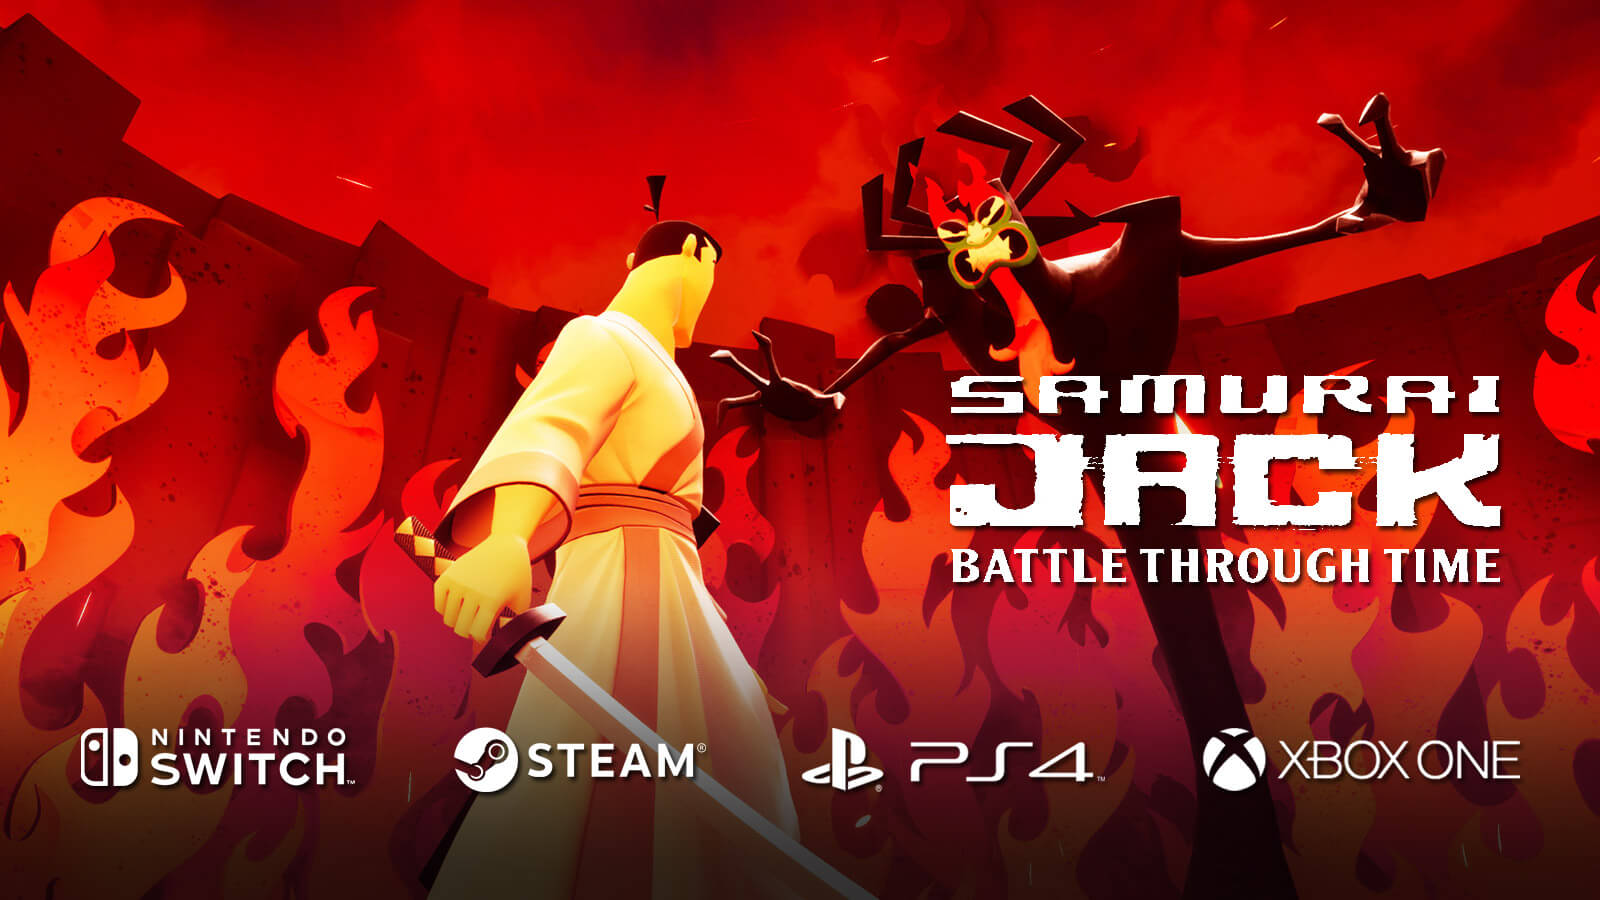 Samurai Jack – Battle Through Time Announced